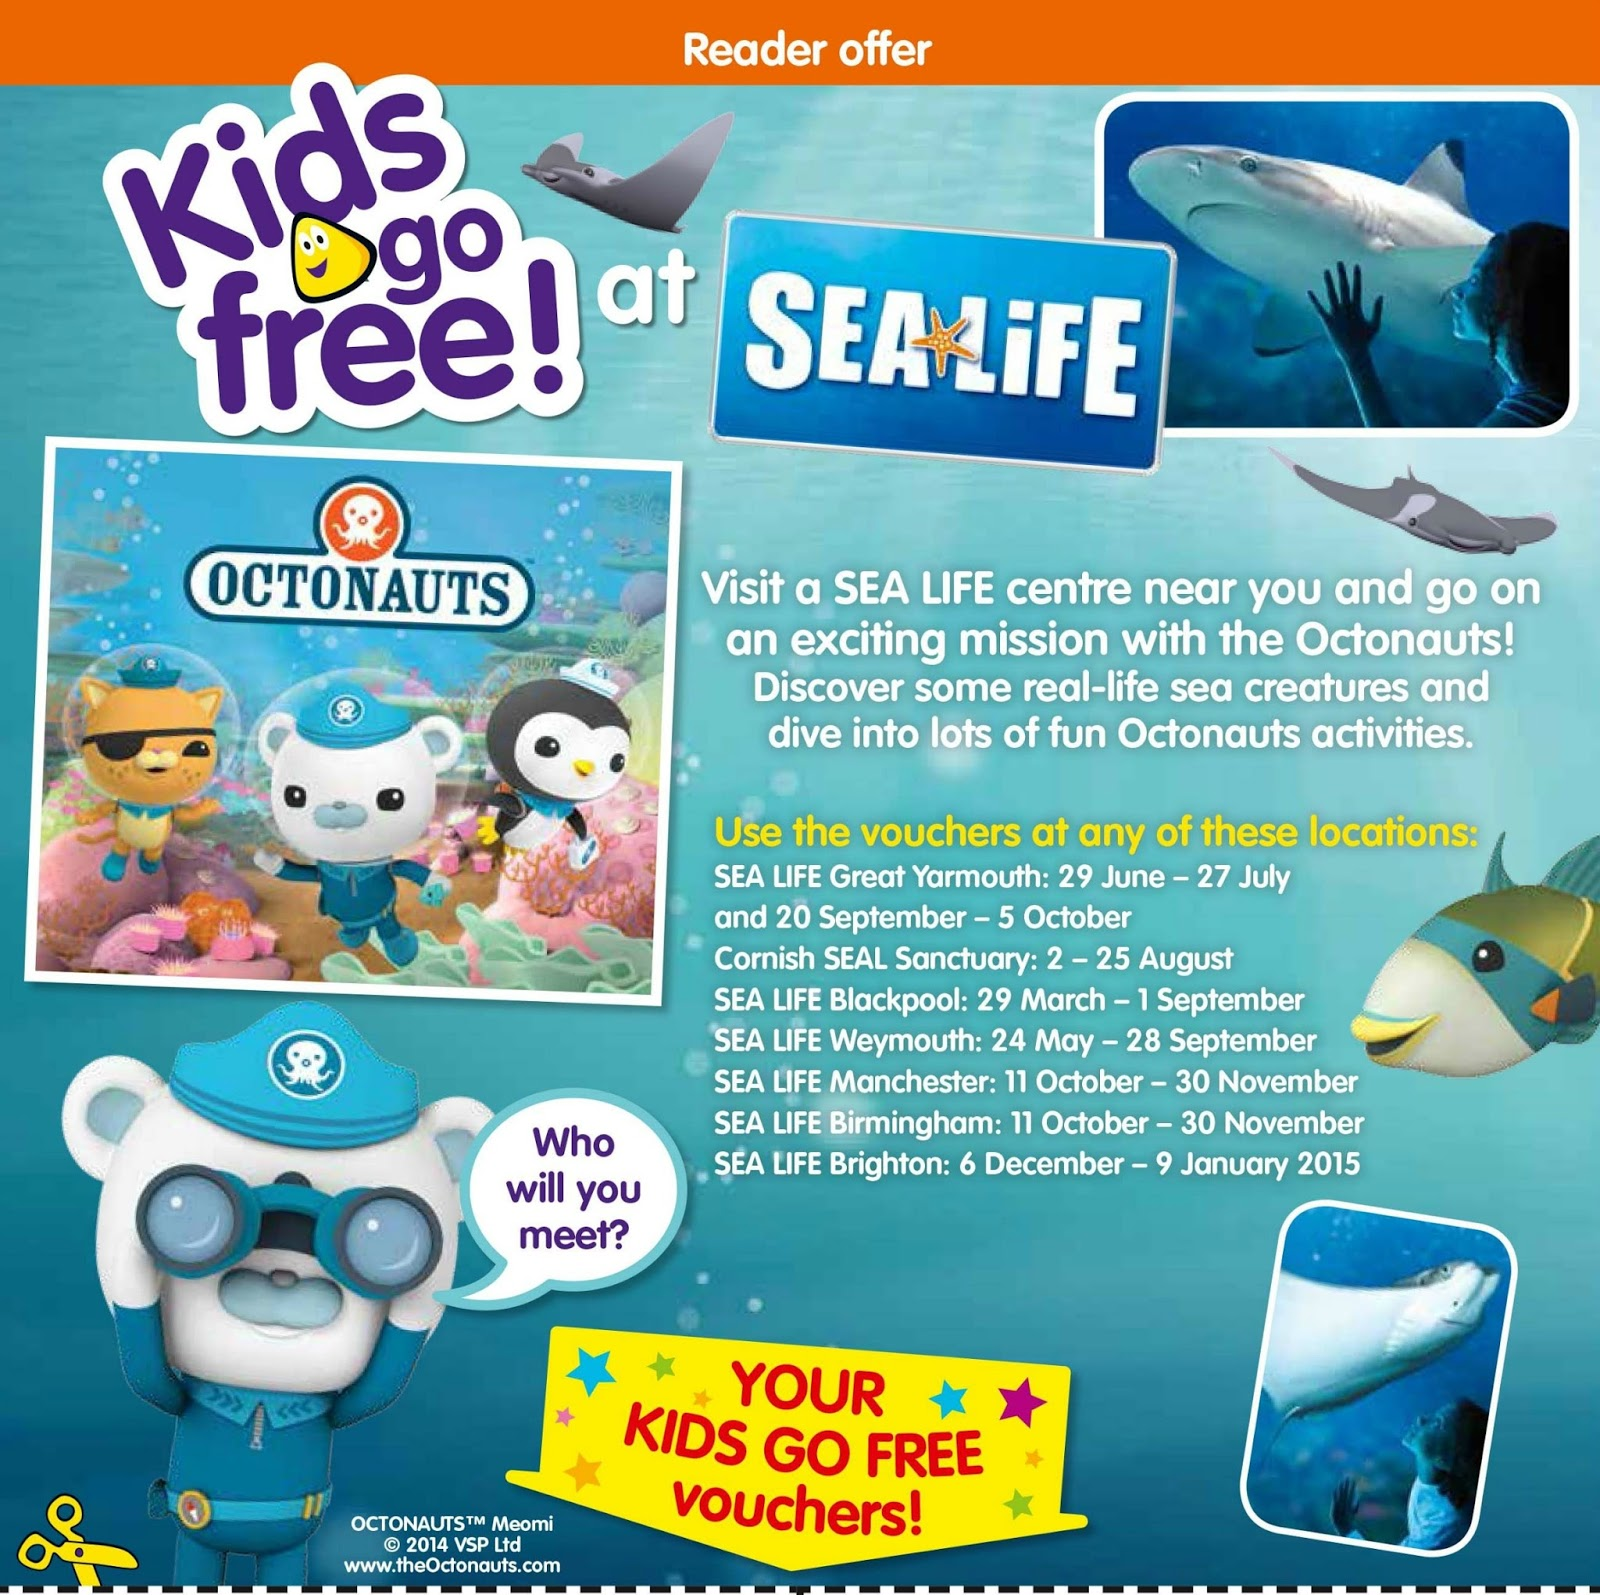 cBeebies Magazine Sea Life Centre Page 16th July 2014